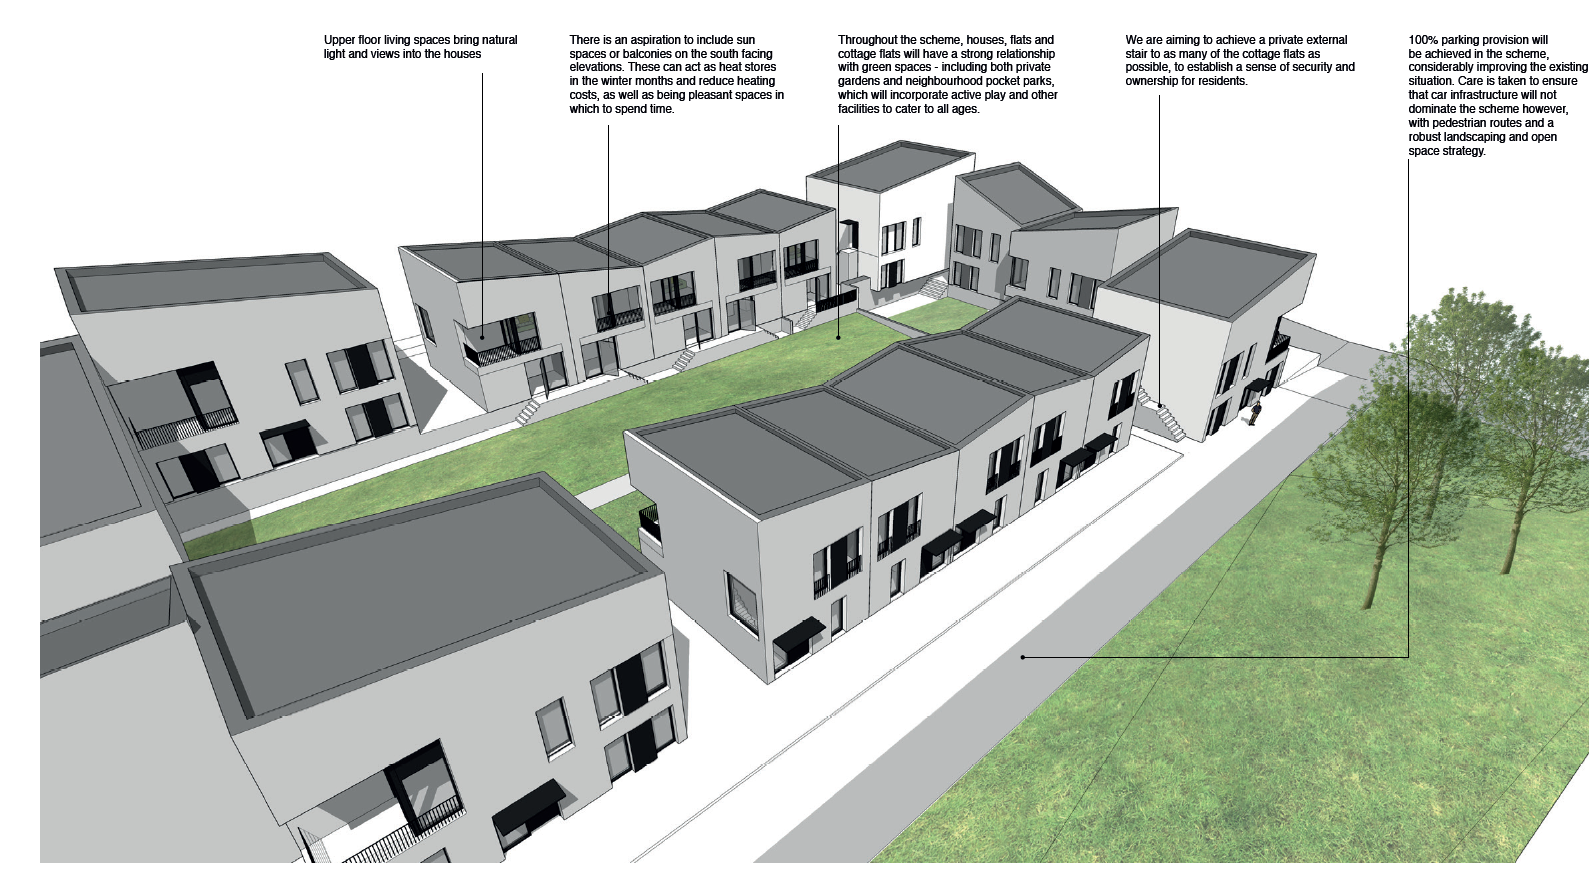 An example of what the new homes in the area would look like.